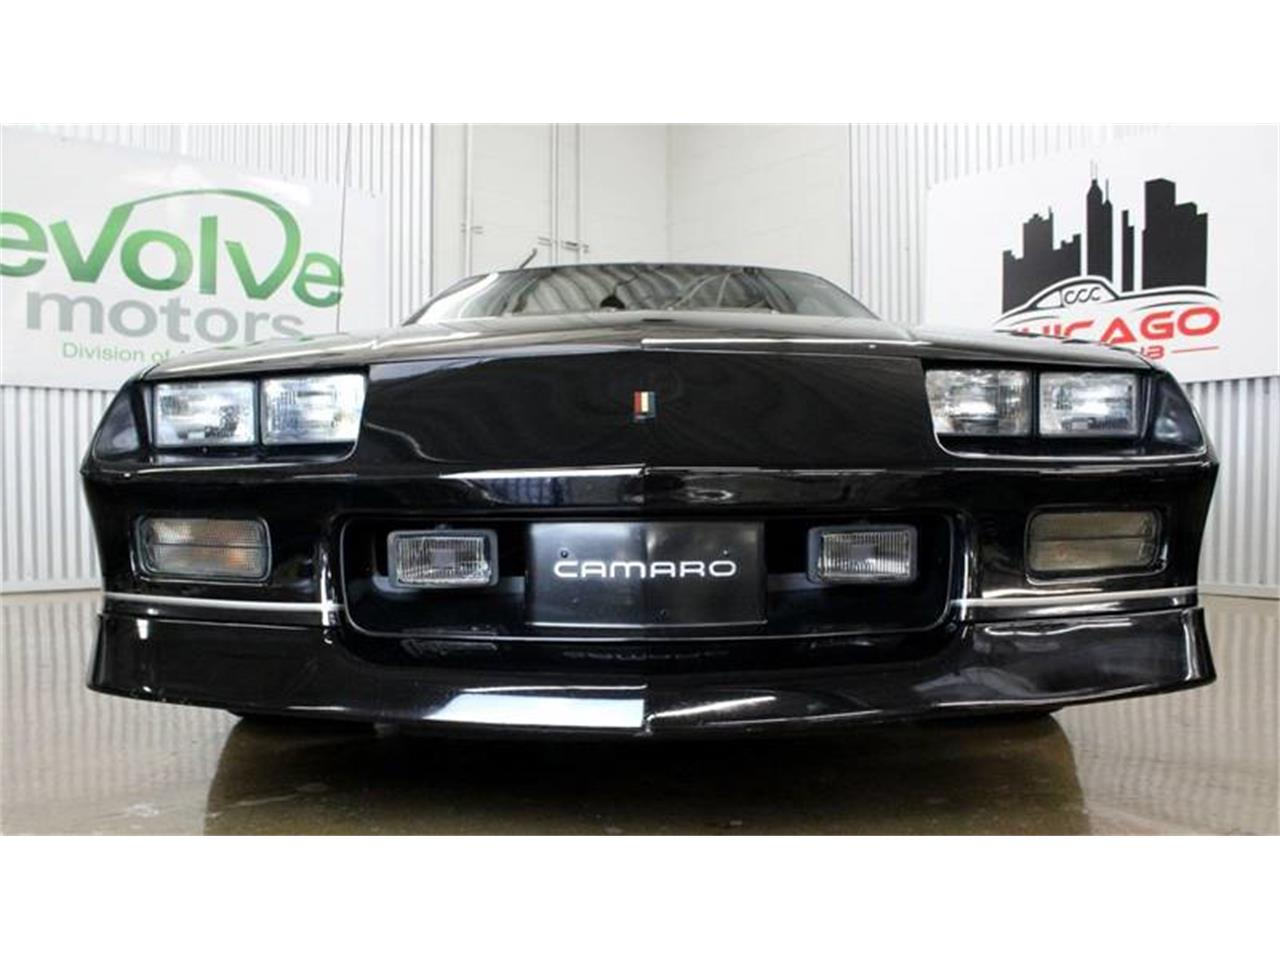 Large Picture of 1985 Chevrolet Camaro Offered by Evolve Motors - MB2C